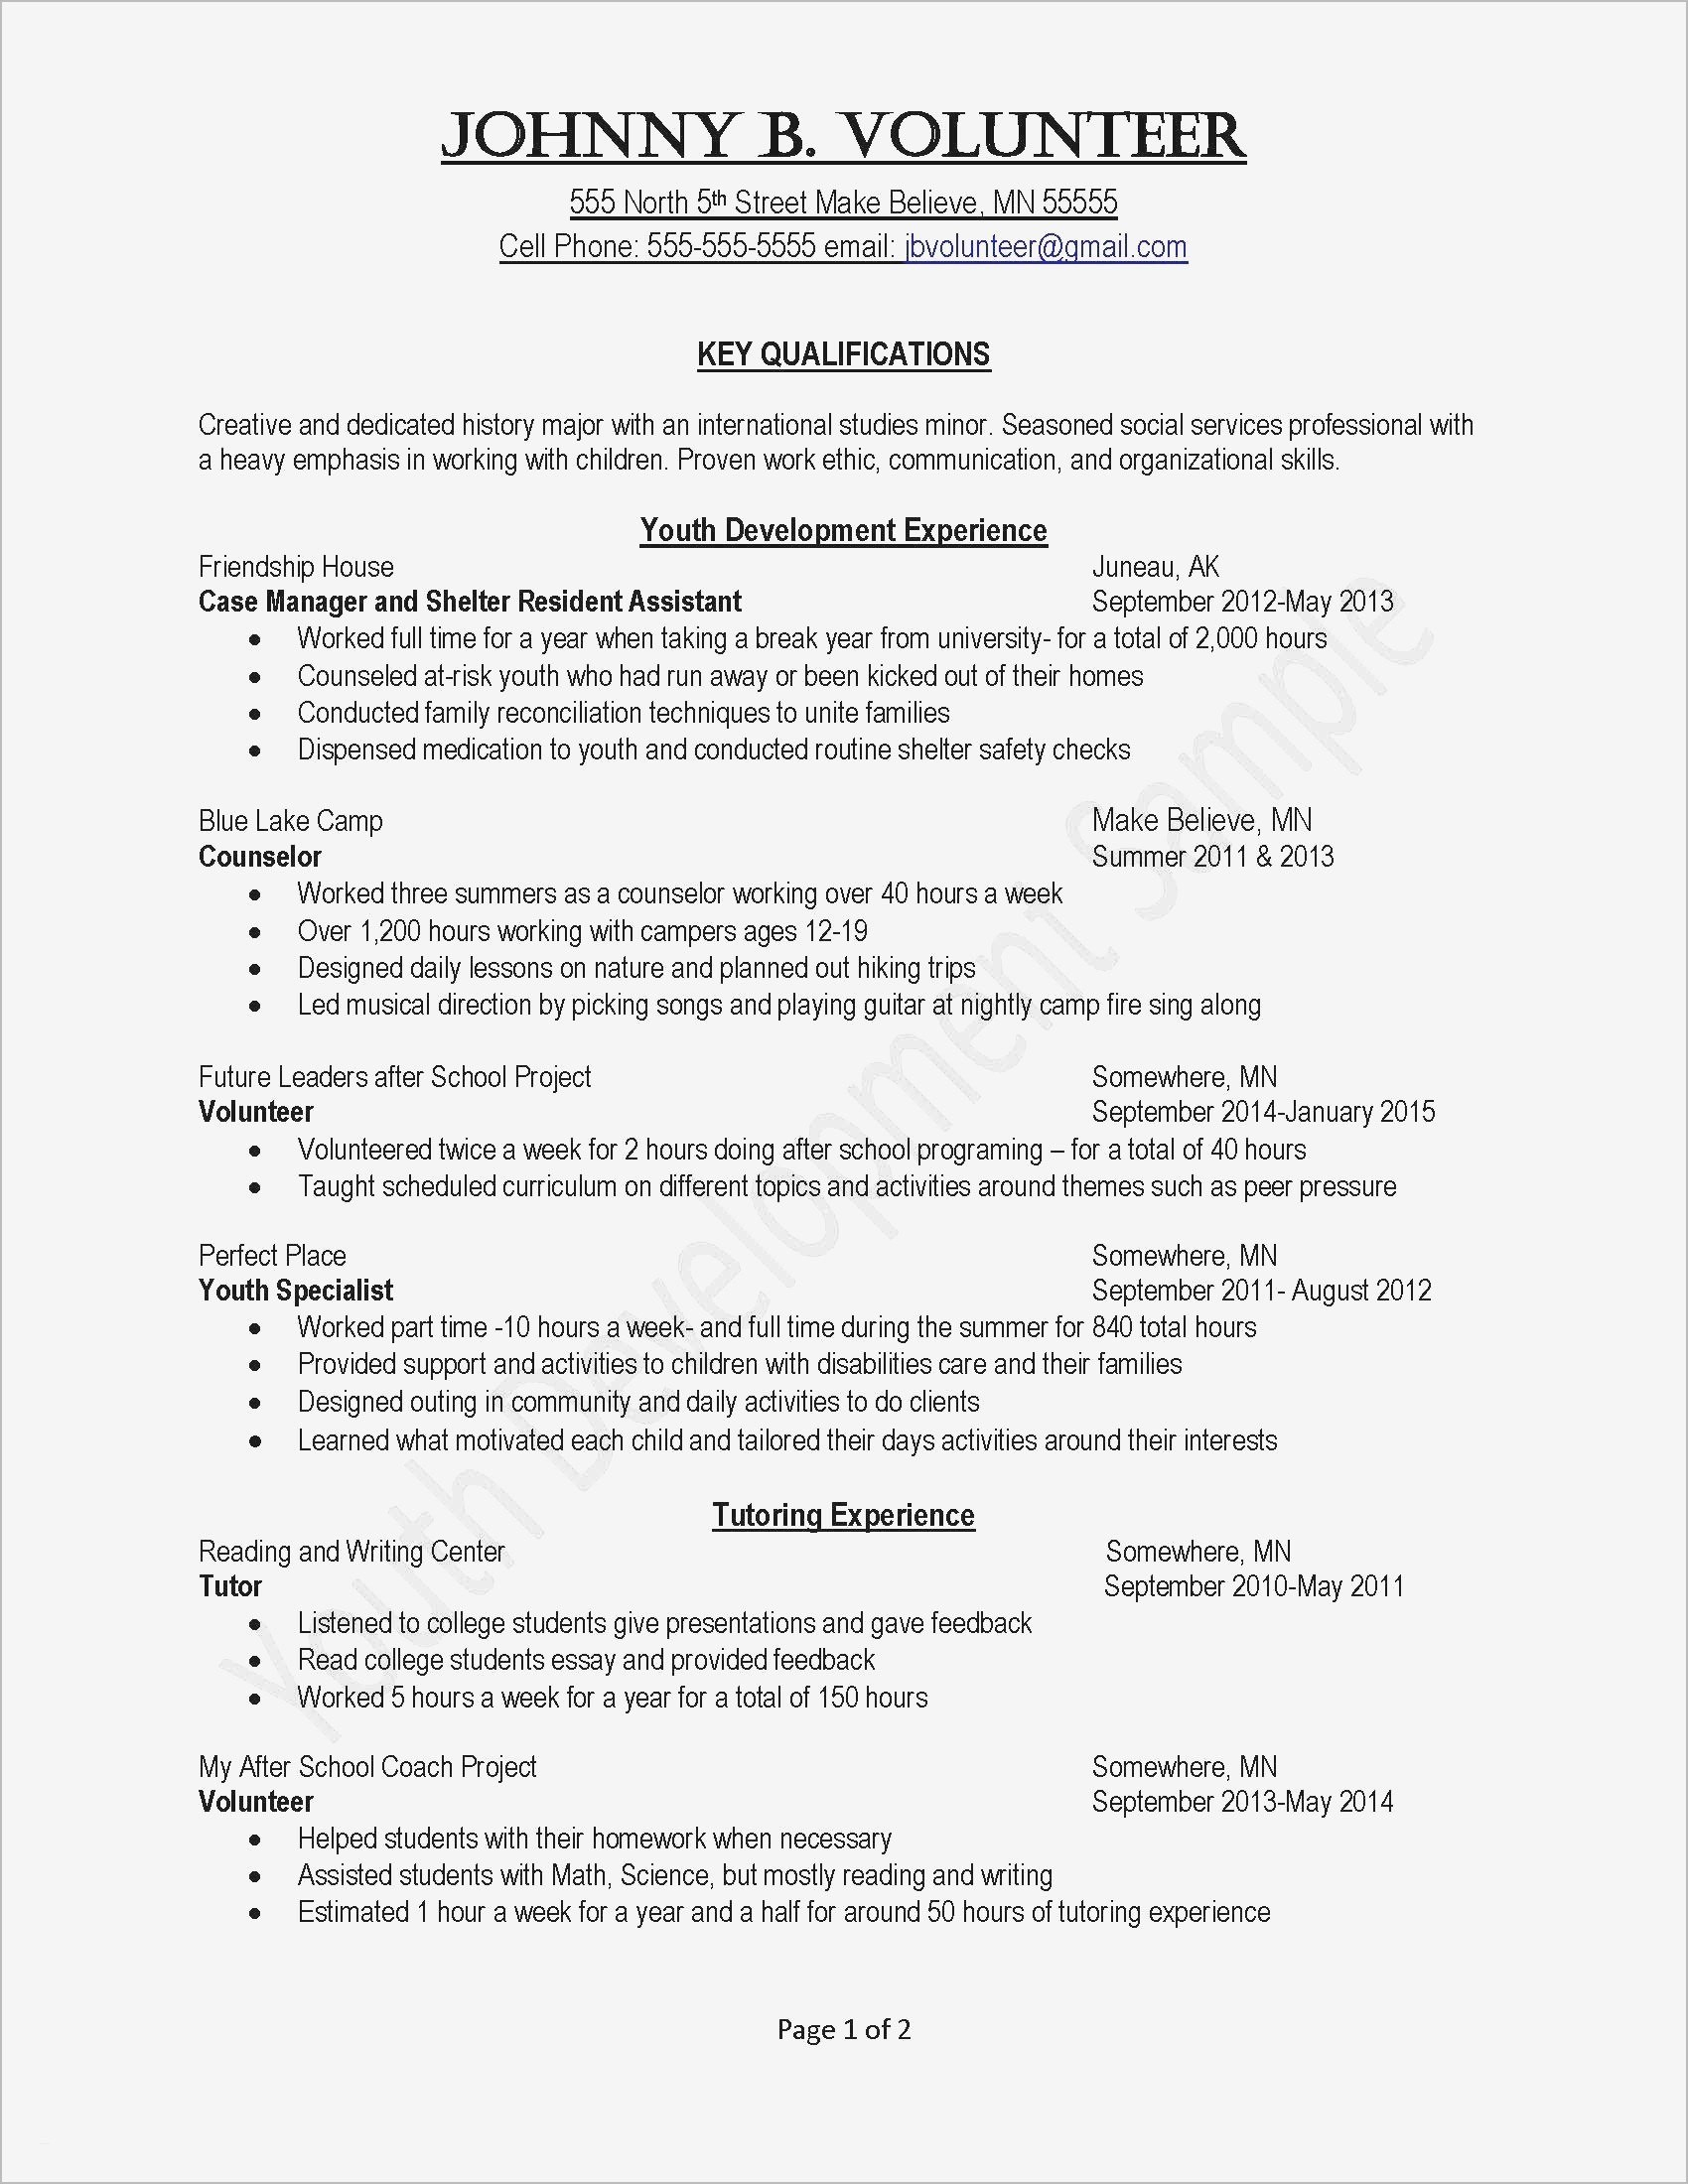 Letter Of Intent Email Template - Letter Interest for Job Template Valid Job Fer Letter Template Us